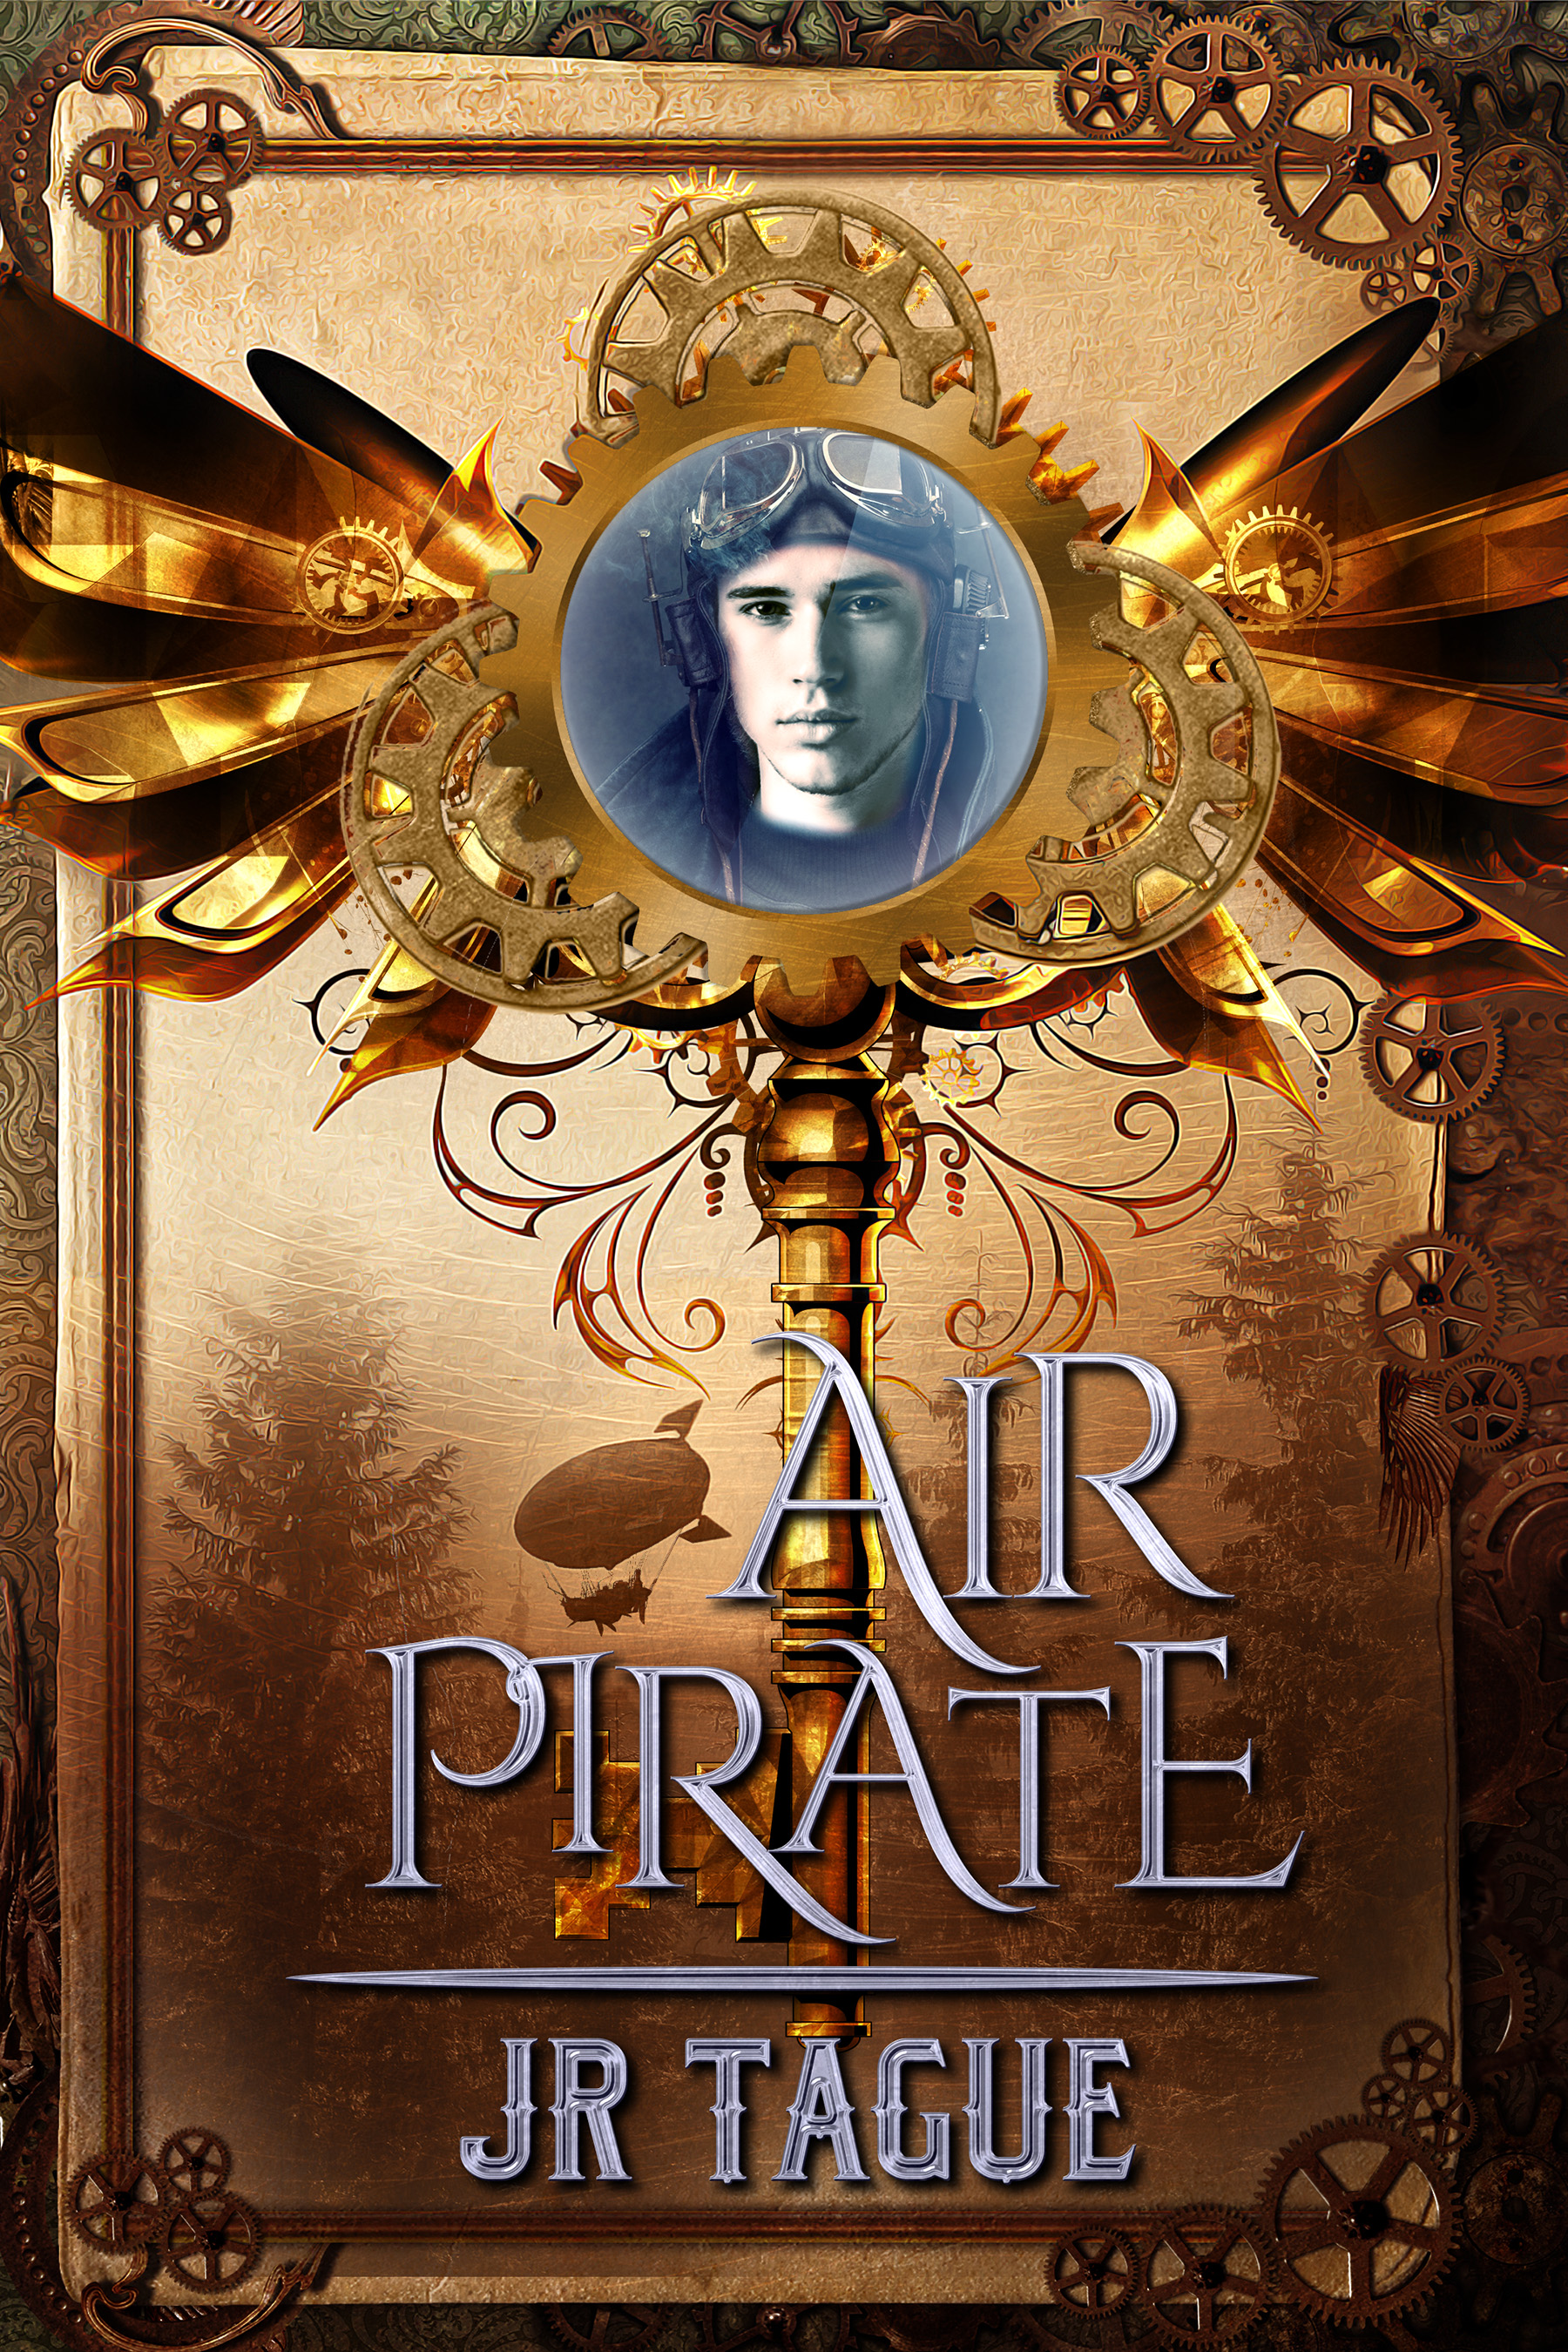 Air Pirate - Townsman thief-for-hire, Darien North, survives a crash landing when his airship explodes over hostile Woodsman territory. He even manages to ingratiate himself to members of the tribe that finds him, including a beautiful girl with wild hair and deadly archery skills. For the first time in his life, Darien starts to feel at home. But his happiness is cut short when the Town's commissioner blackmails him into stealing a secret heirloom from the Woodsman tribes. After years of being a loner, Darien is forced to choose between competing loyalties: friends or family, woods or town. And when he learns of an old, deadly weapon that could put all of humanity at risk, he must decide what—or whom—he's willing to sacrifice to save them all.